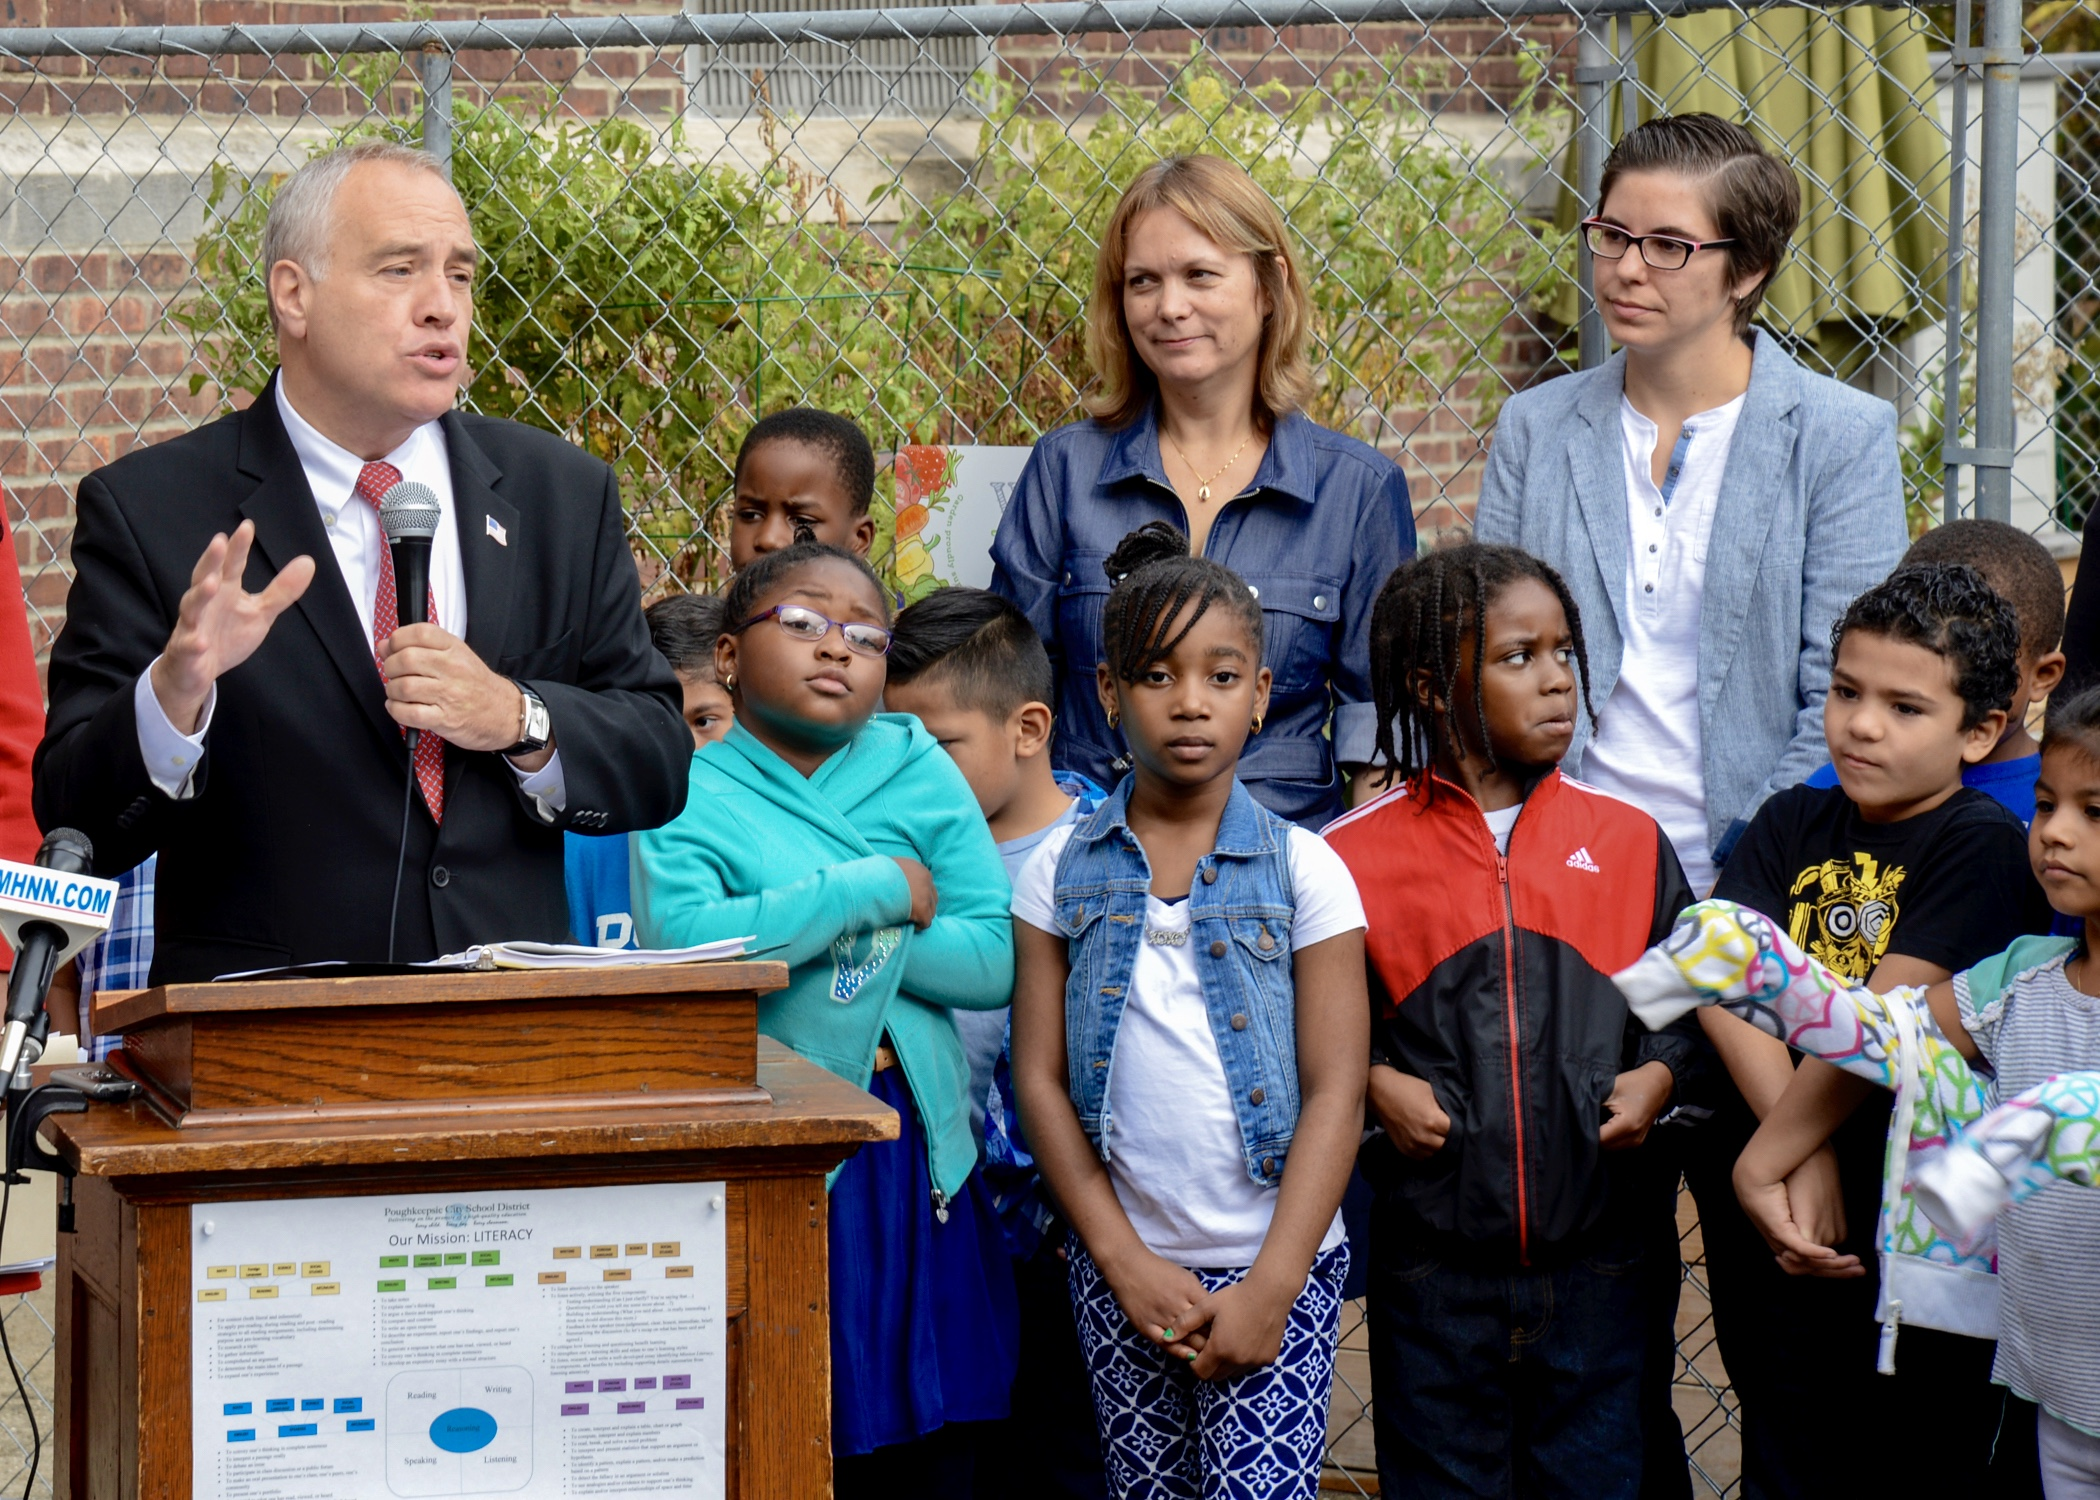 Mr. DiNapoli talks about the benefits of Farm-to-School programs in NYS.